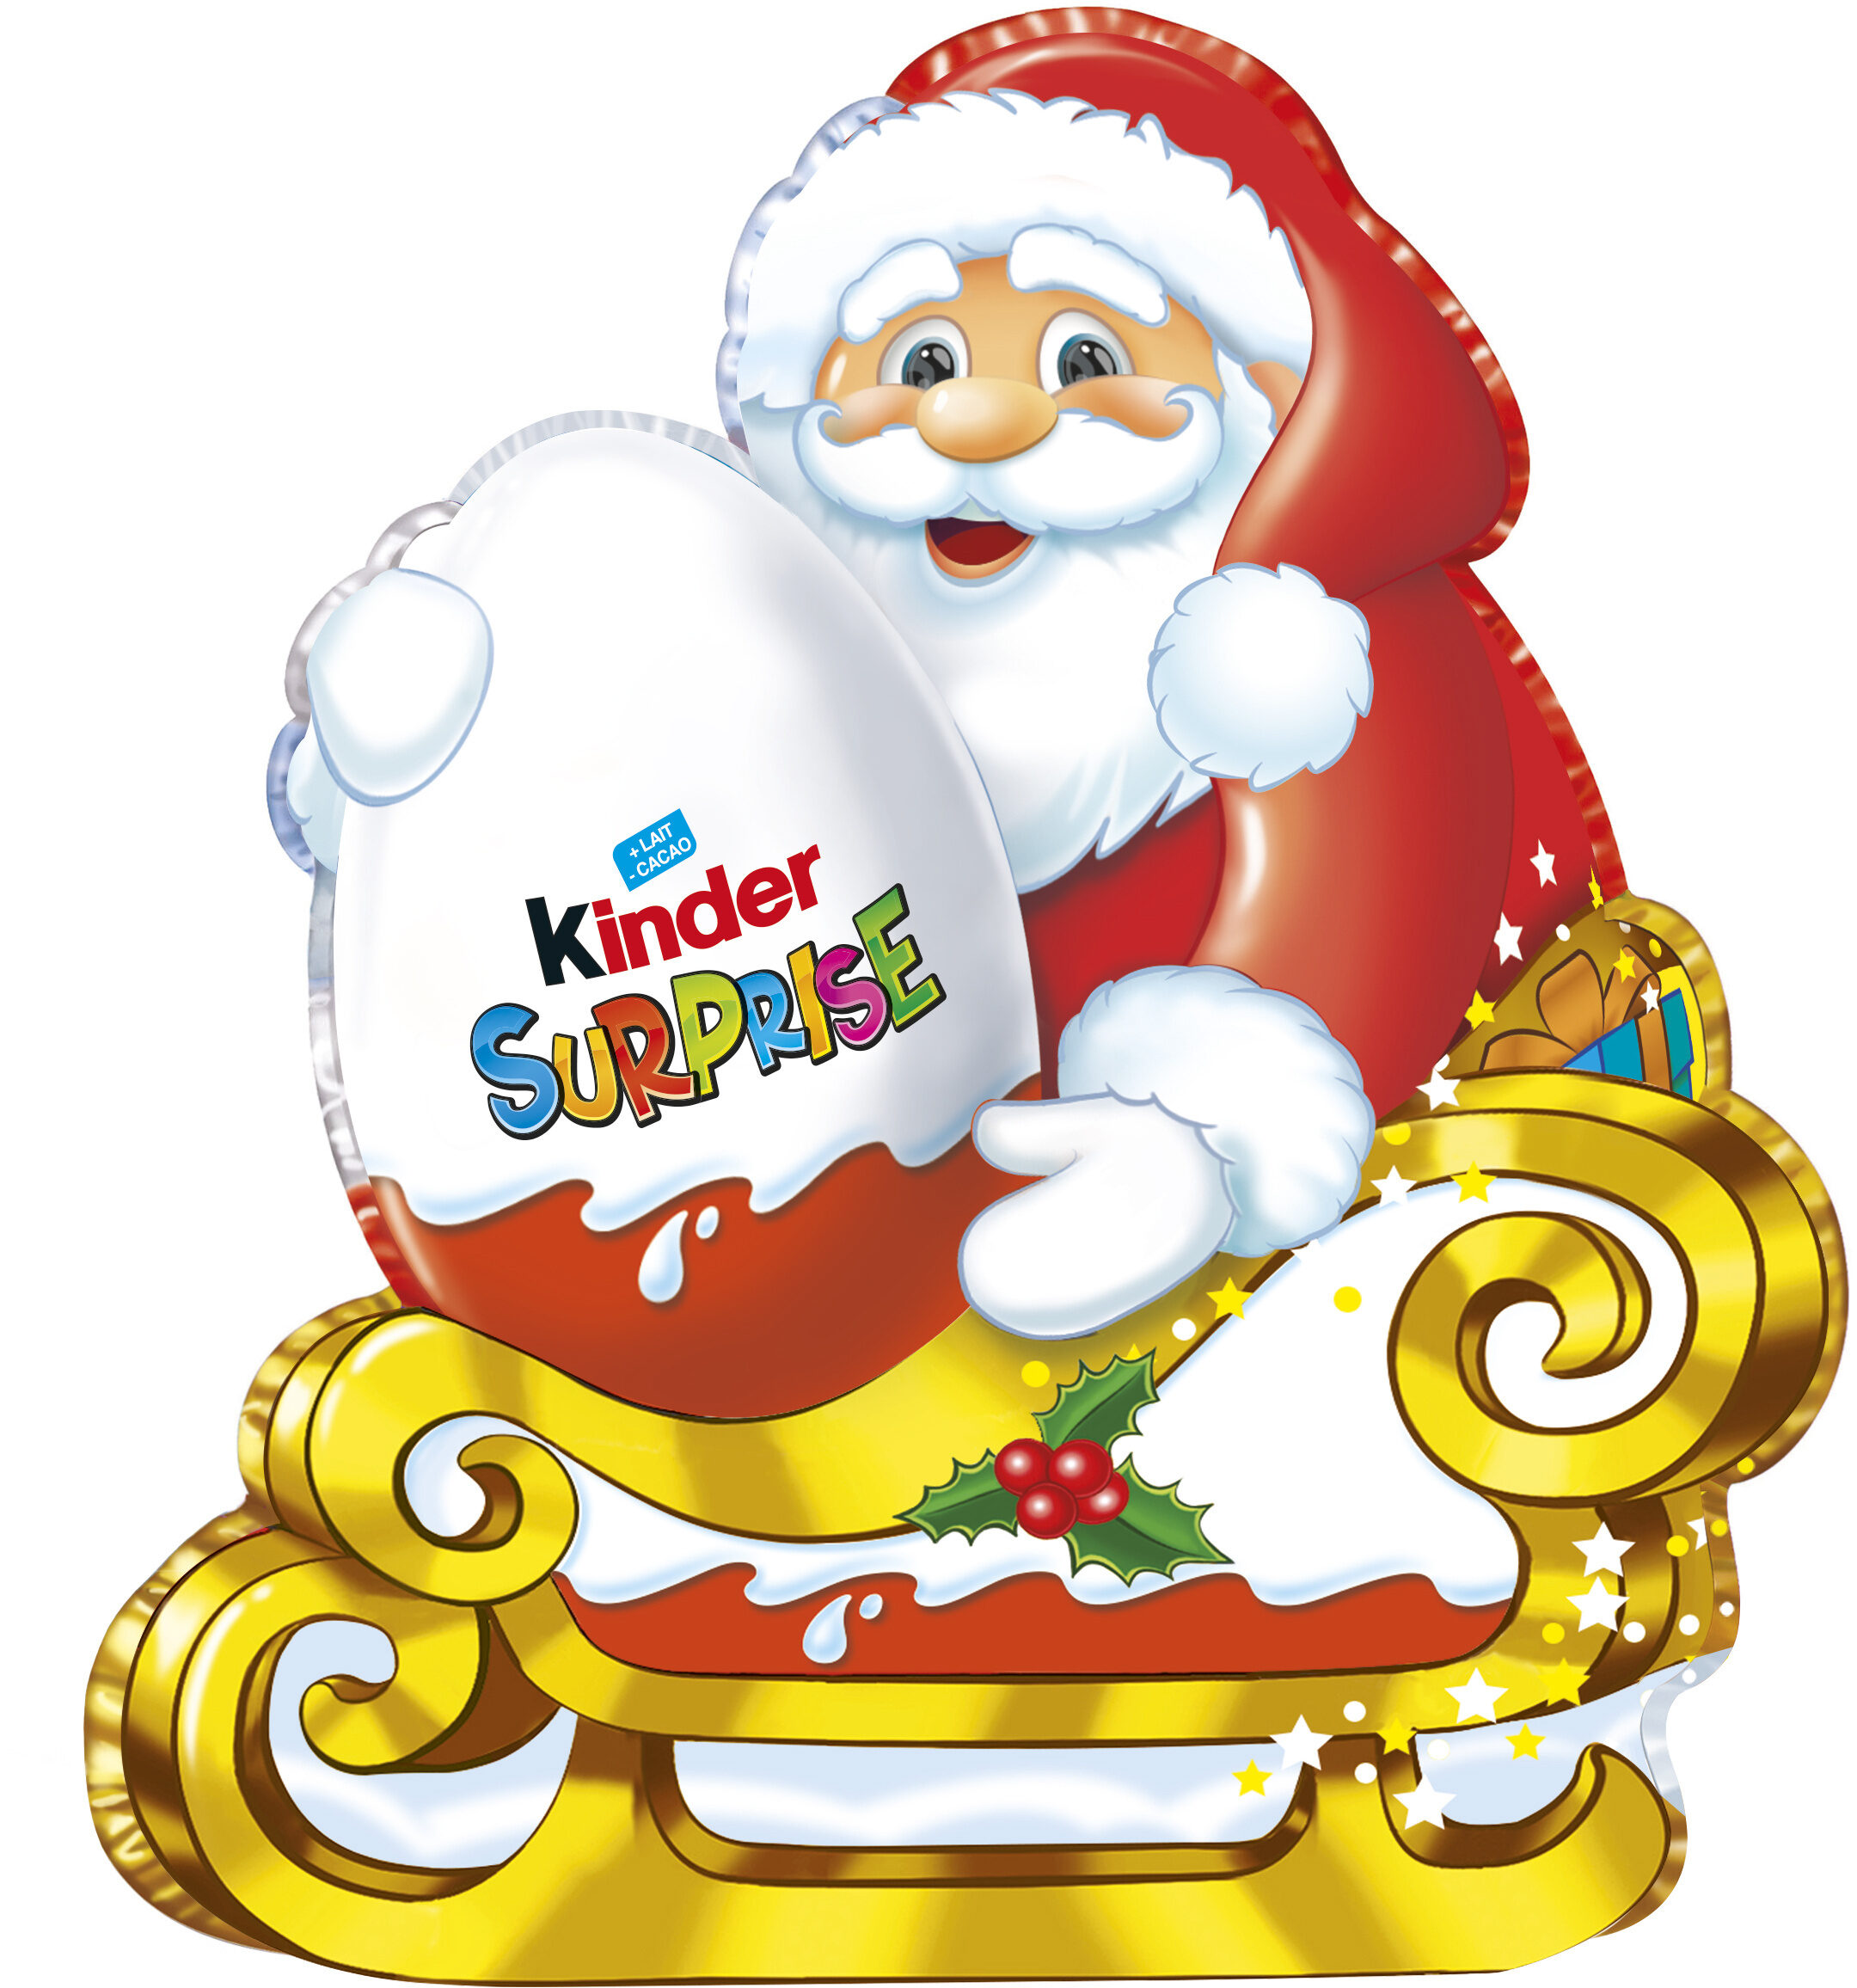 Kinder moulage 75g avec surprise père noel - Prodotto - fr